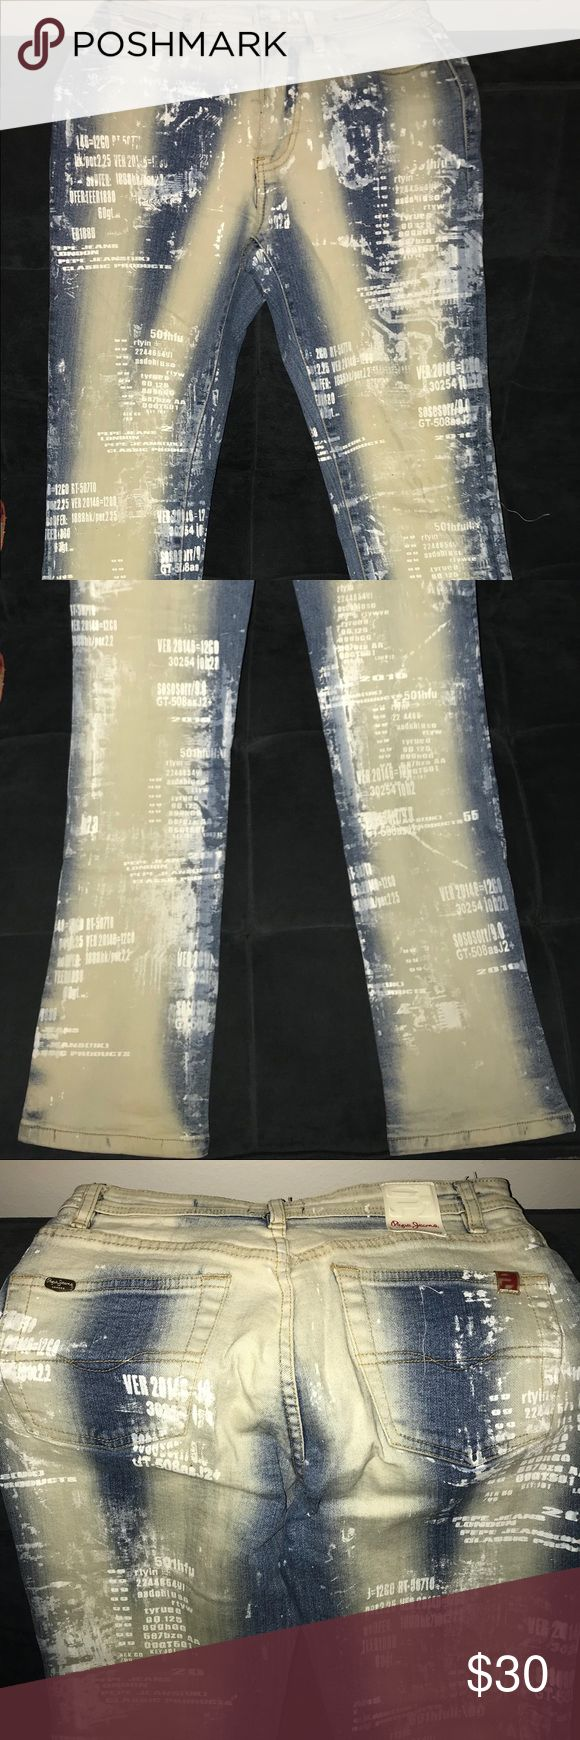 Pepe Jeans slim fit stone wash size 26/6 US Pepe Jeans slim fit stone wash size 26/6 US. Unique print Pepe Jeans Jeans Straight Leg